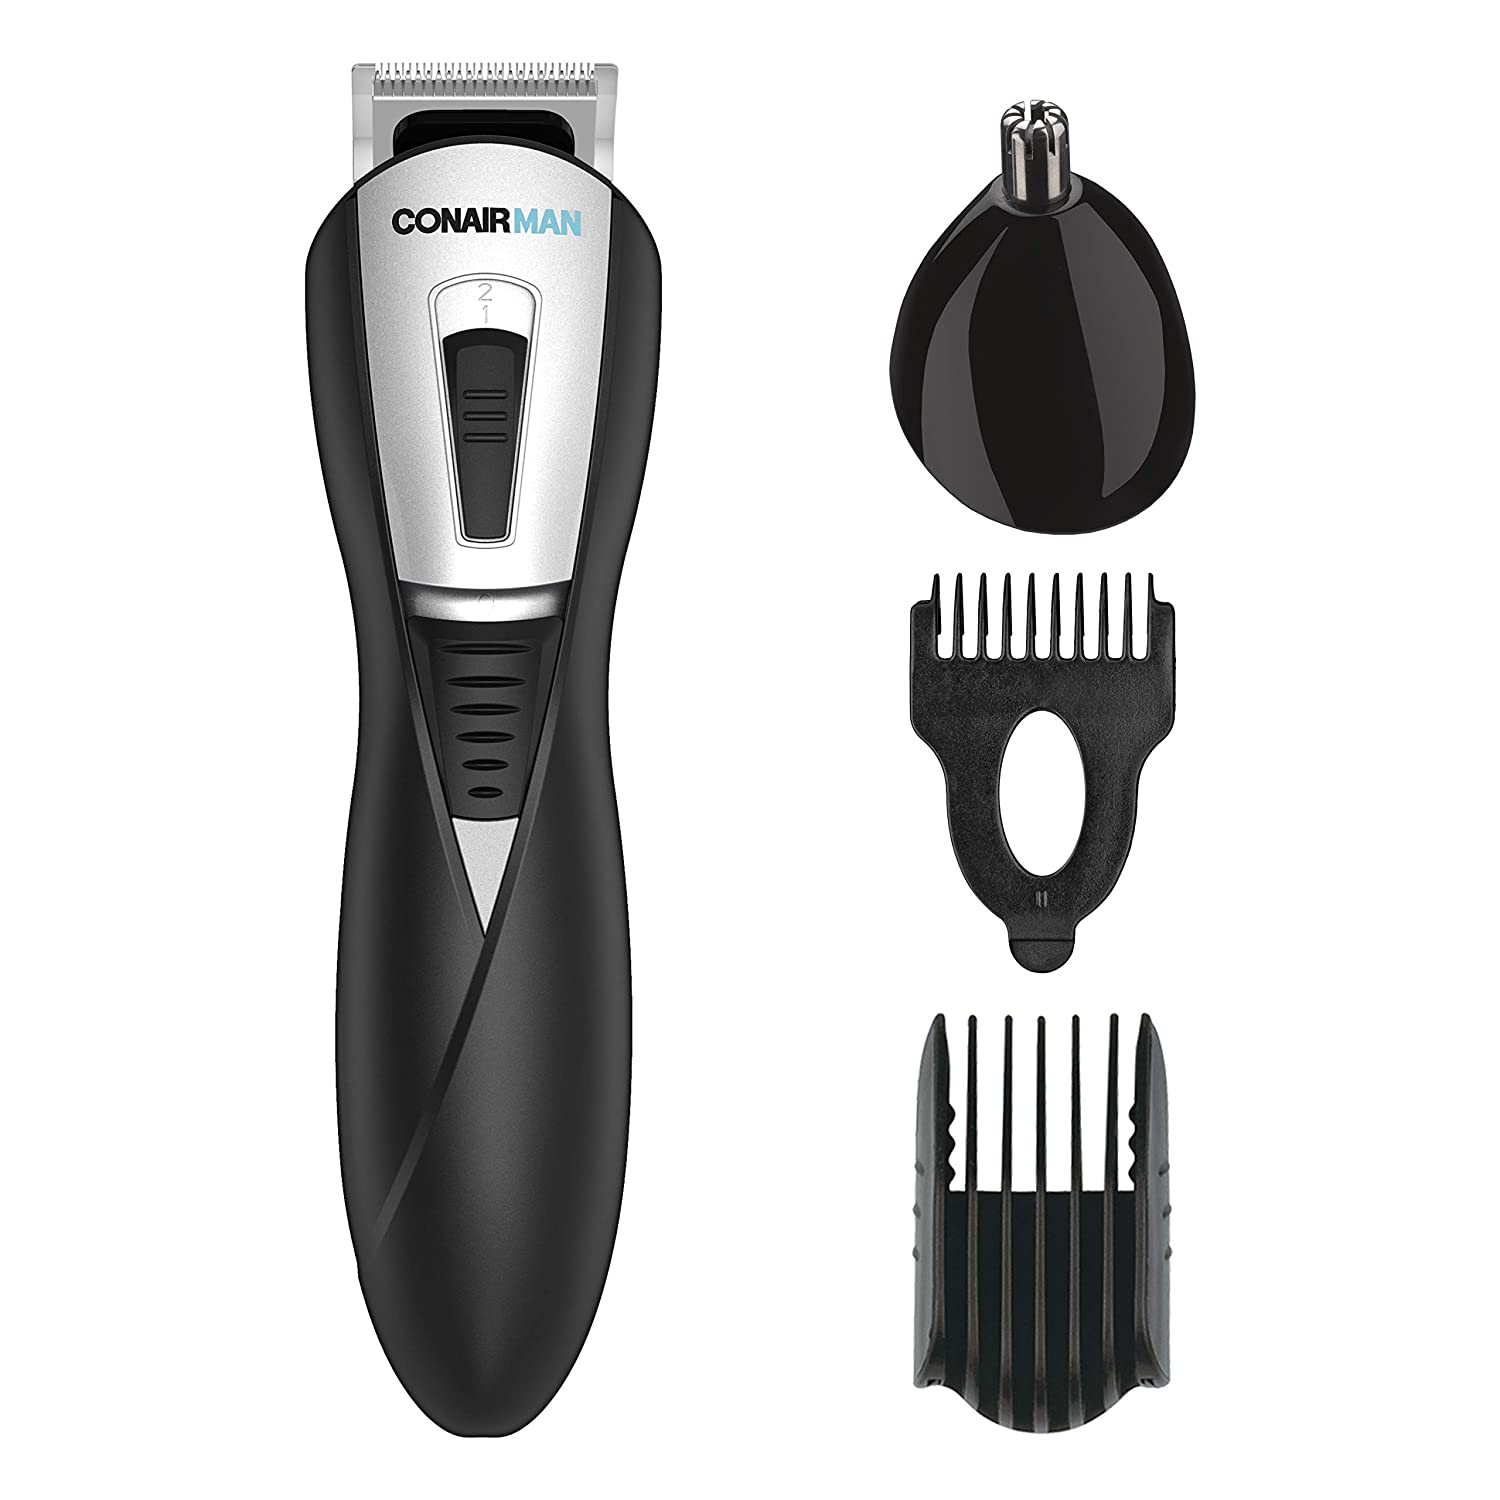 ConairMAN Lithium Ion Powered All-In-1 Men s Trimmer, Battery Operated